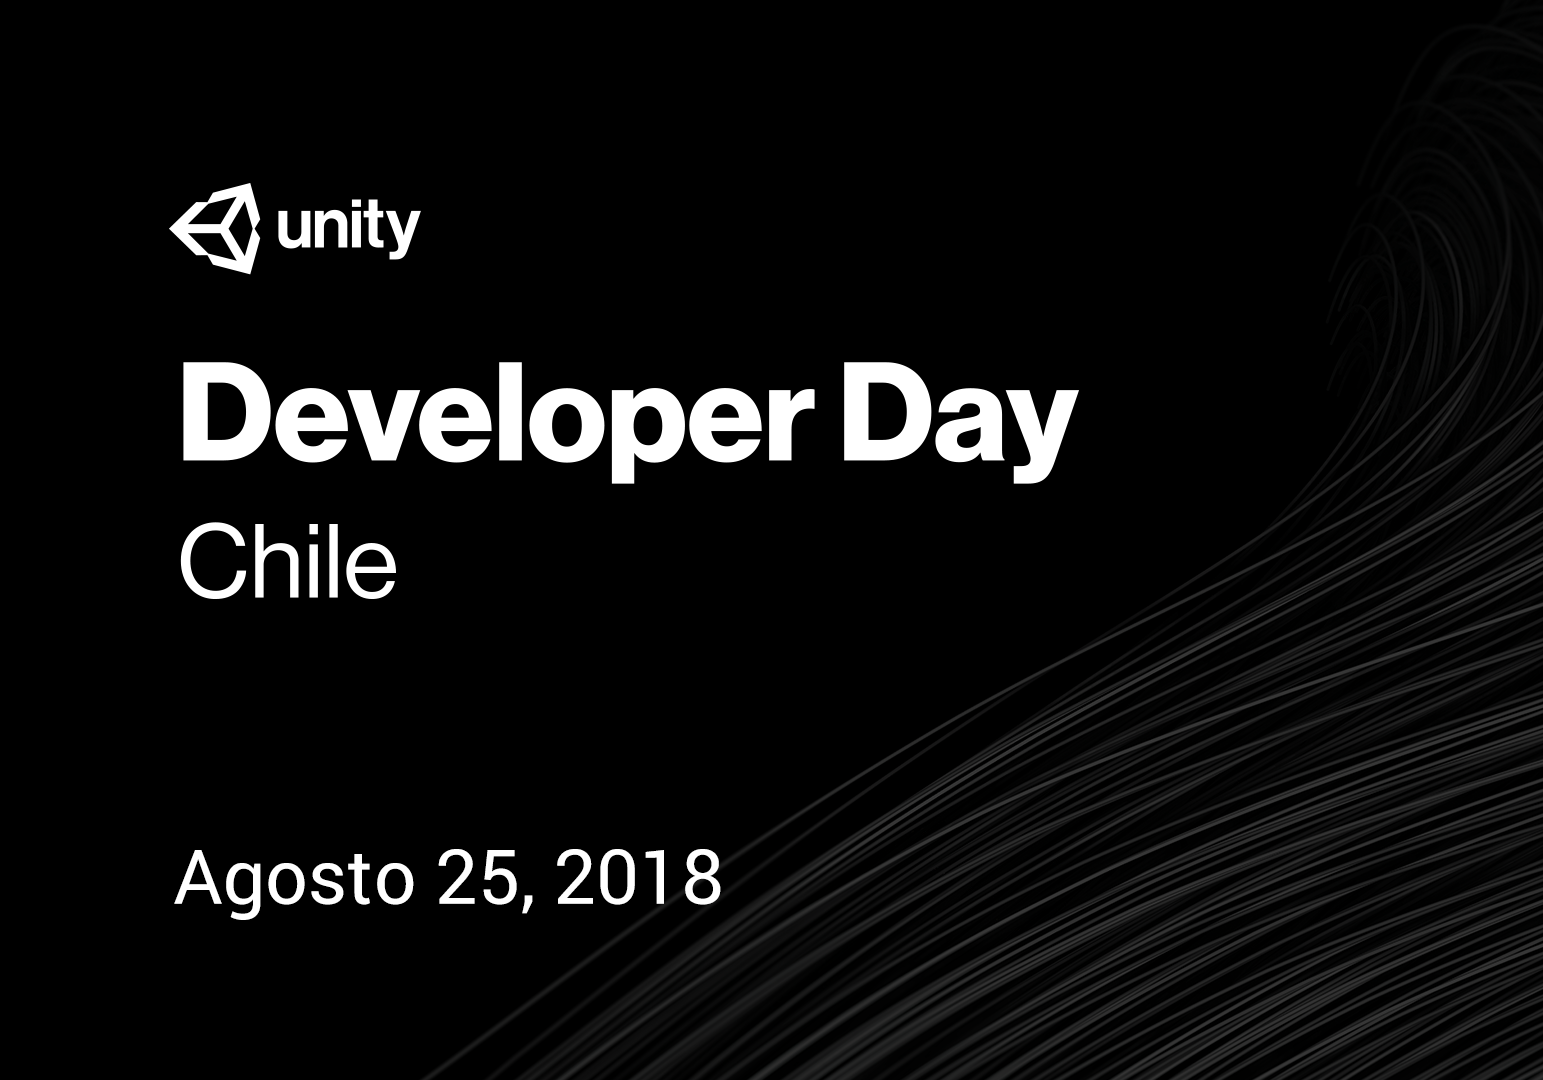 Unity Developer Day: Chile 2018